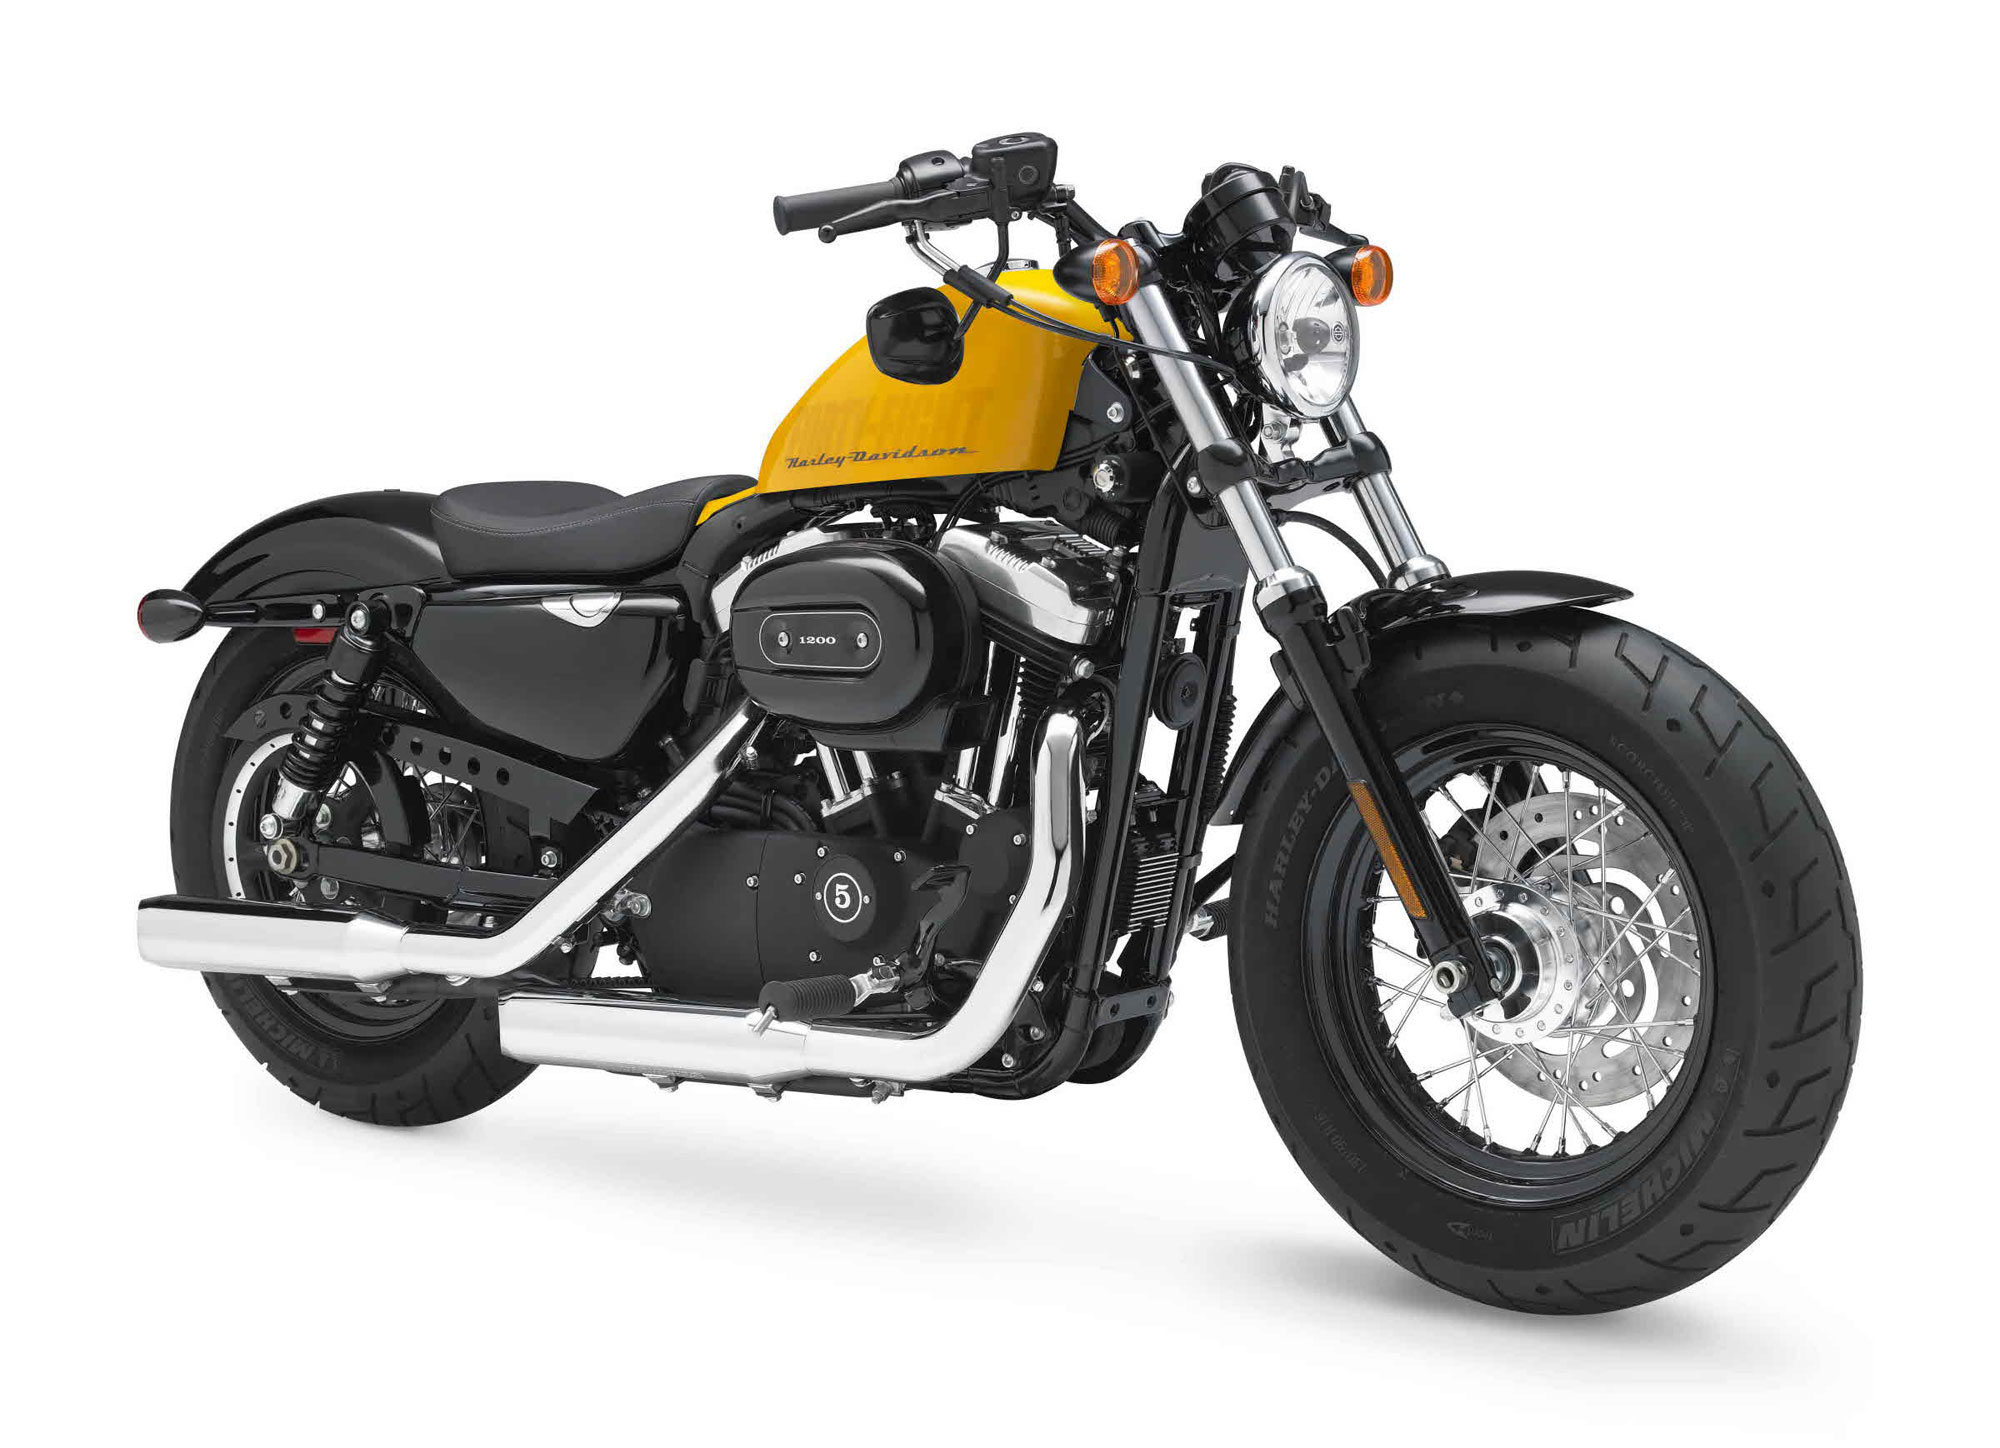 2012 harley-davidson xl1200x forty-eight 48 review